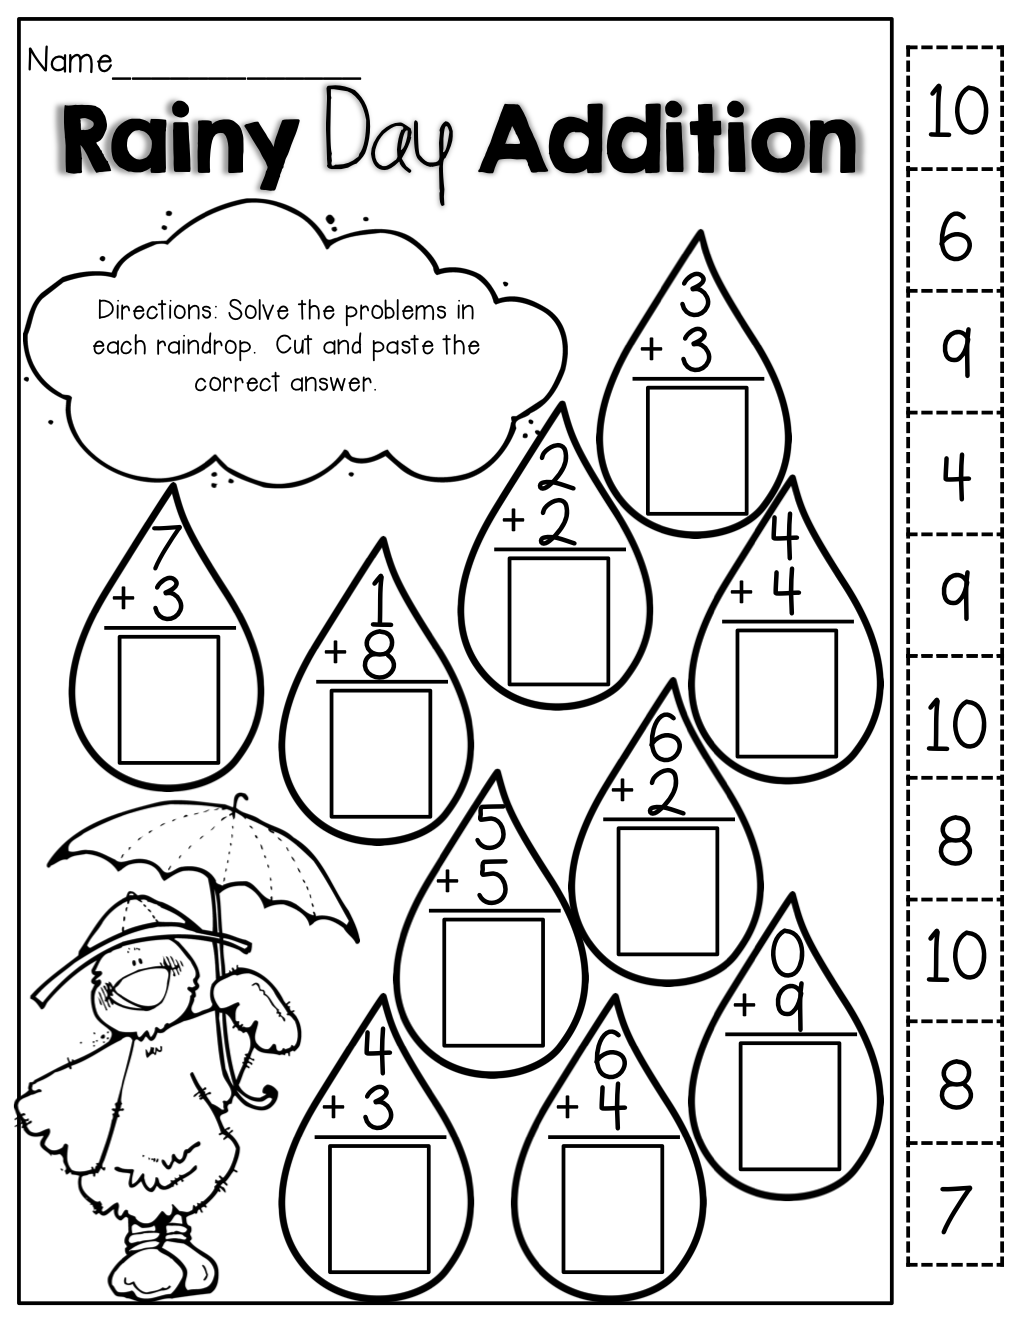 Collection Of Free Cut And Paste Math Worksheets For 2nd Grade Free Worksheets Samples